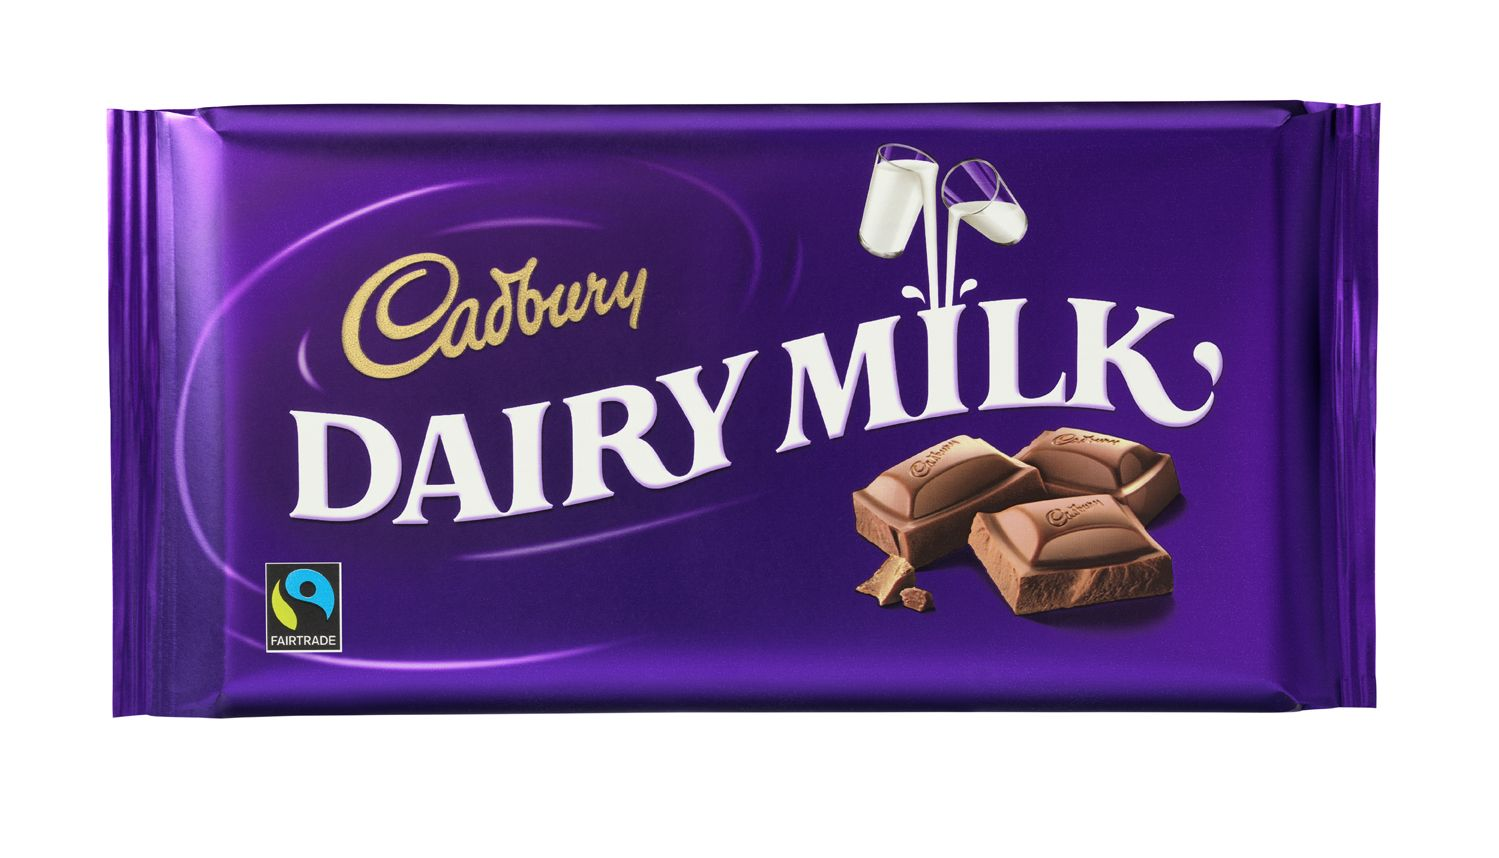 cadbury dairy milk 4p s Cadbury dairy milk, 5 star, perk, clairs and celebrations marketing mix of cadbury : cadbury plc is a british confectionery company 4p of marketing, advertising campaigns, aesthetic design, business practices.